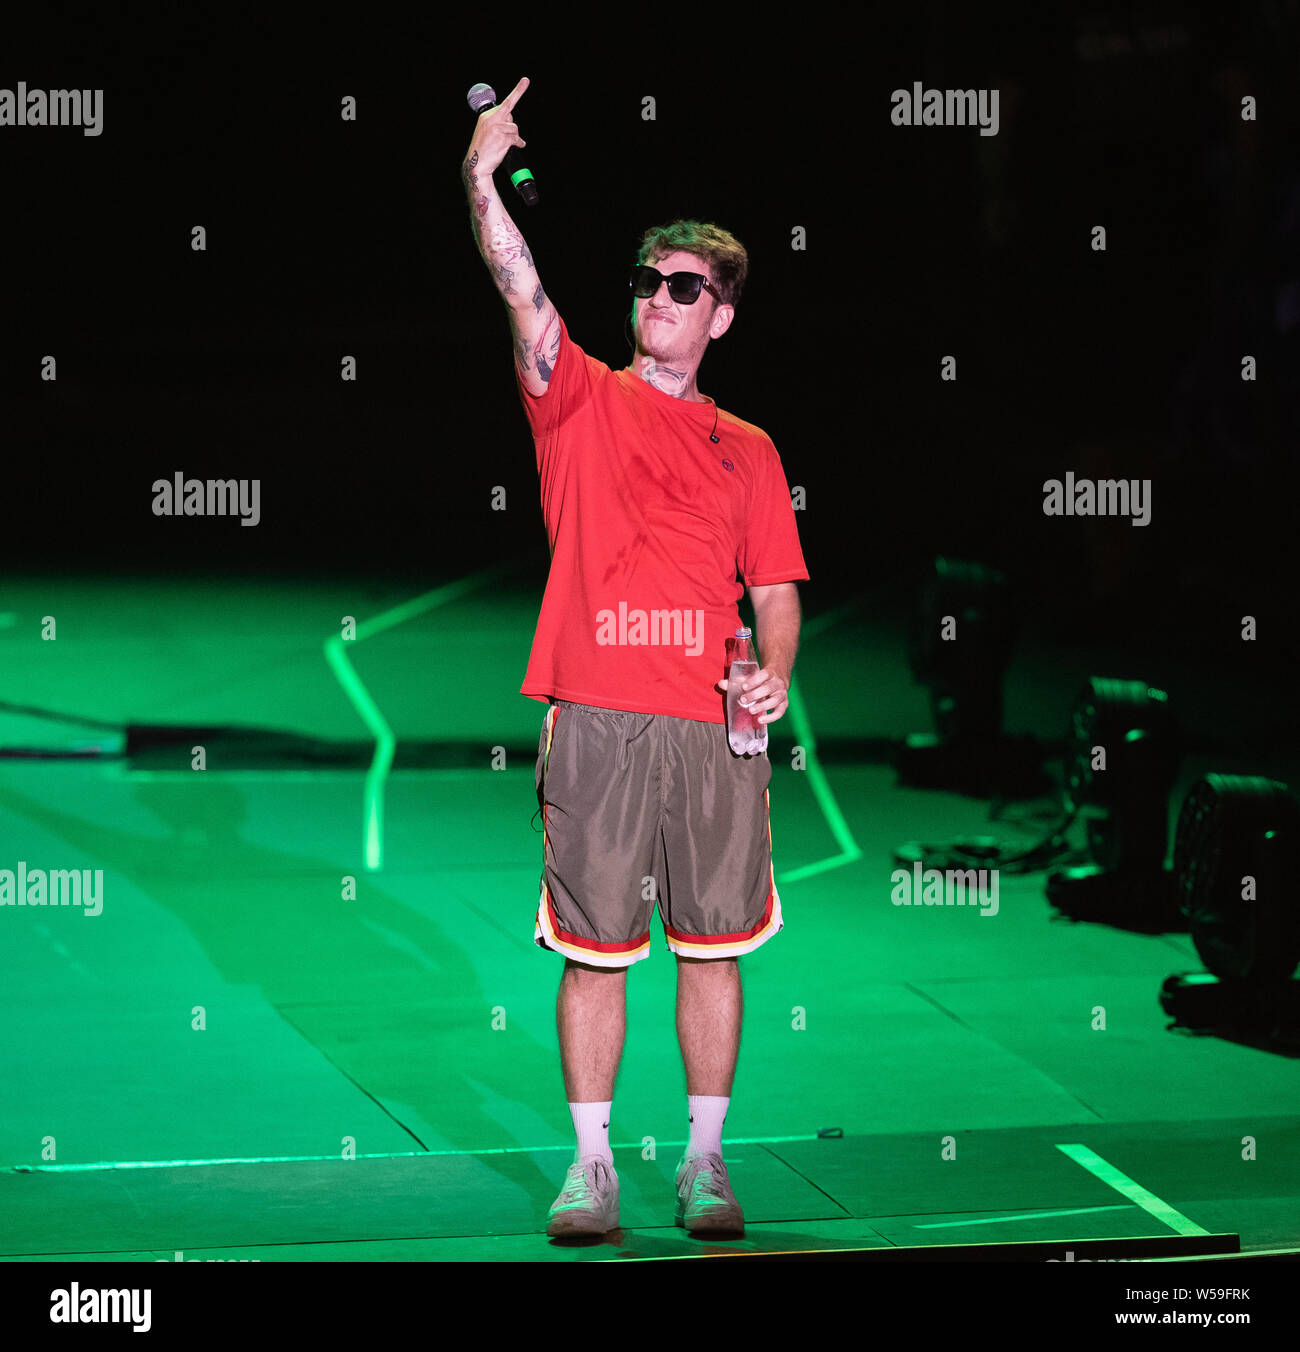 "Naples, Italy. 26th July, 2019. The italian rapper Dani Faiv opens the concert of singer and songwriter Maurizio Pisciottu known as Salmo during the ""Playlist Summer Tour"" at Noisy Fest in Naples. Credit: SOPA Images Limited/Alamy Live News Stock Photo"